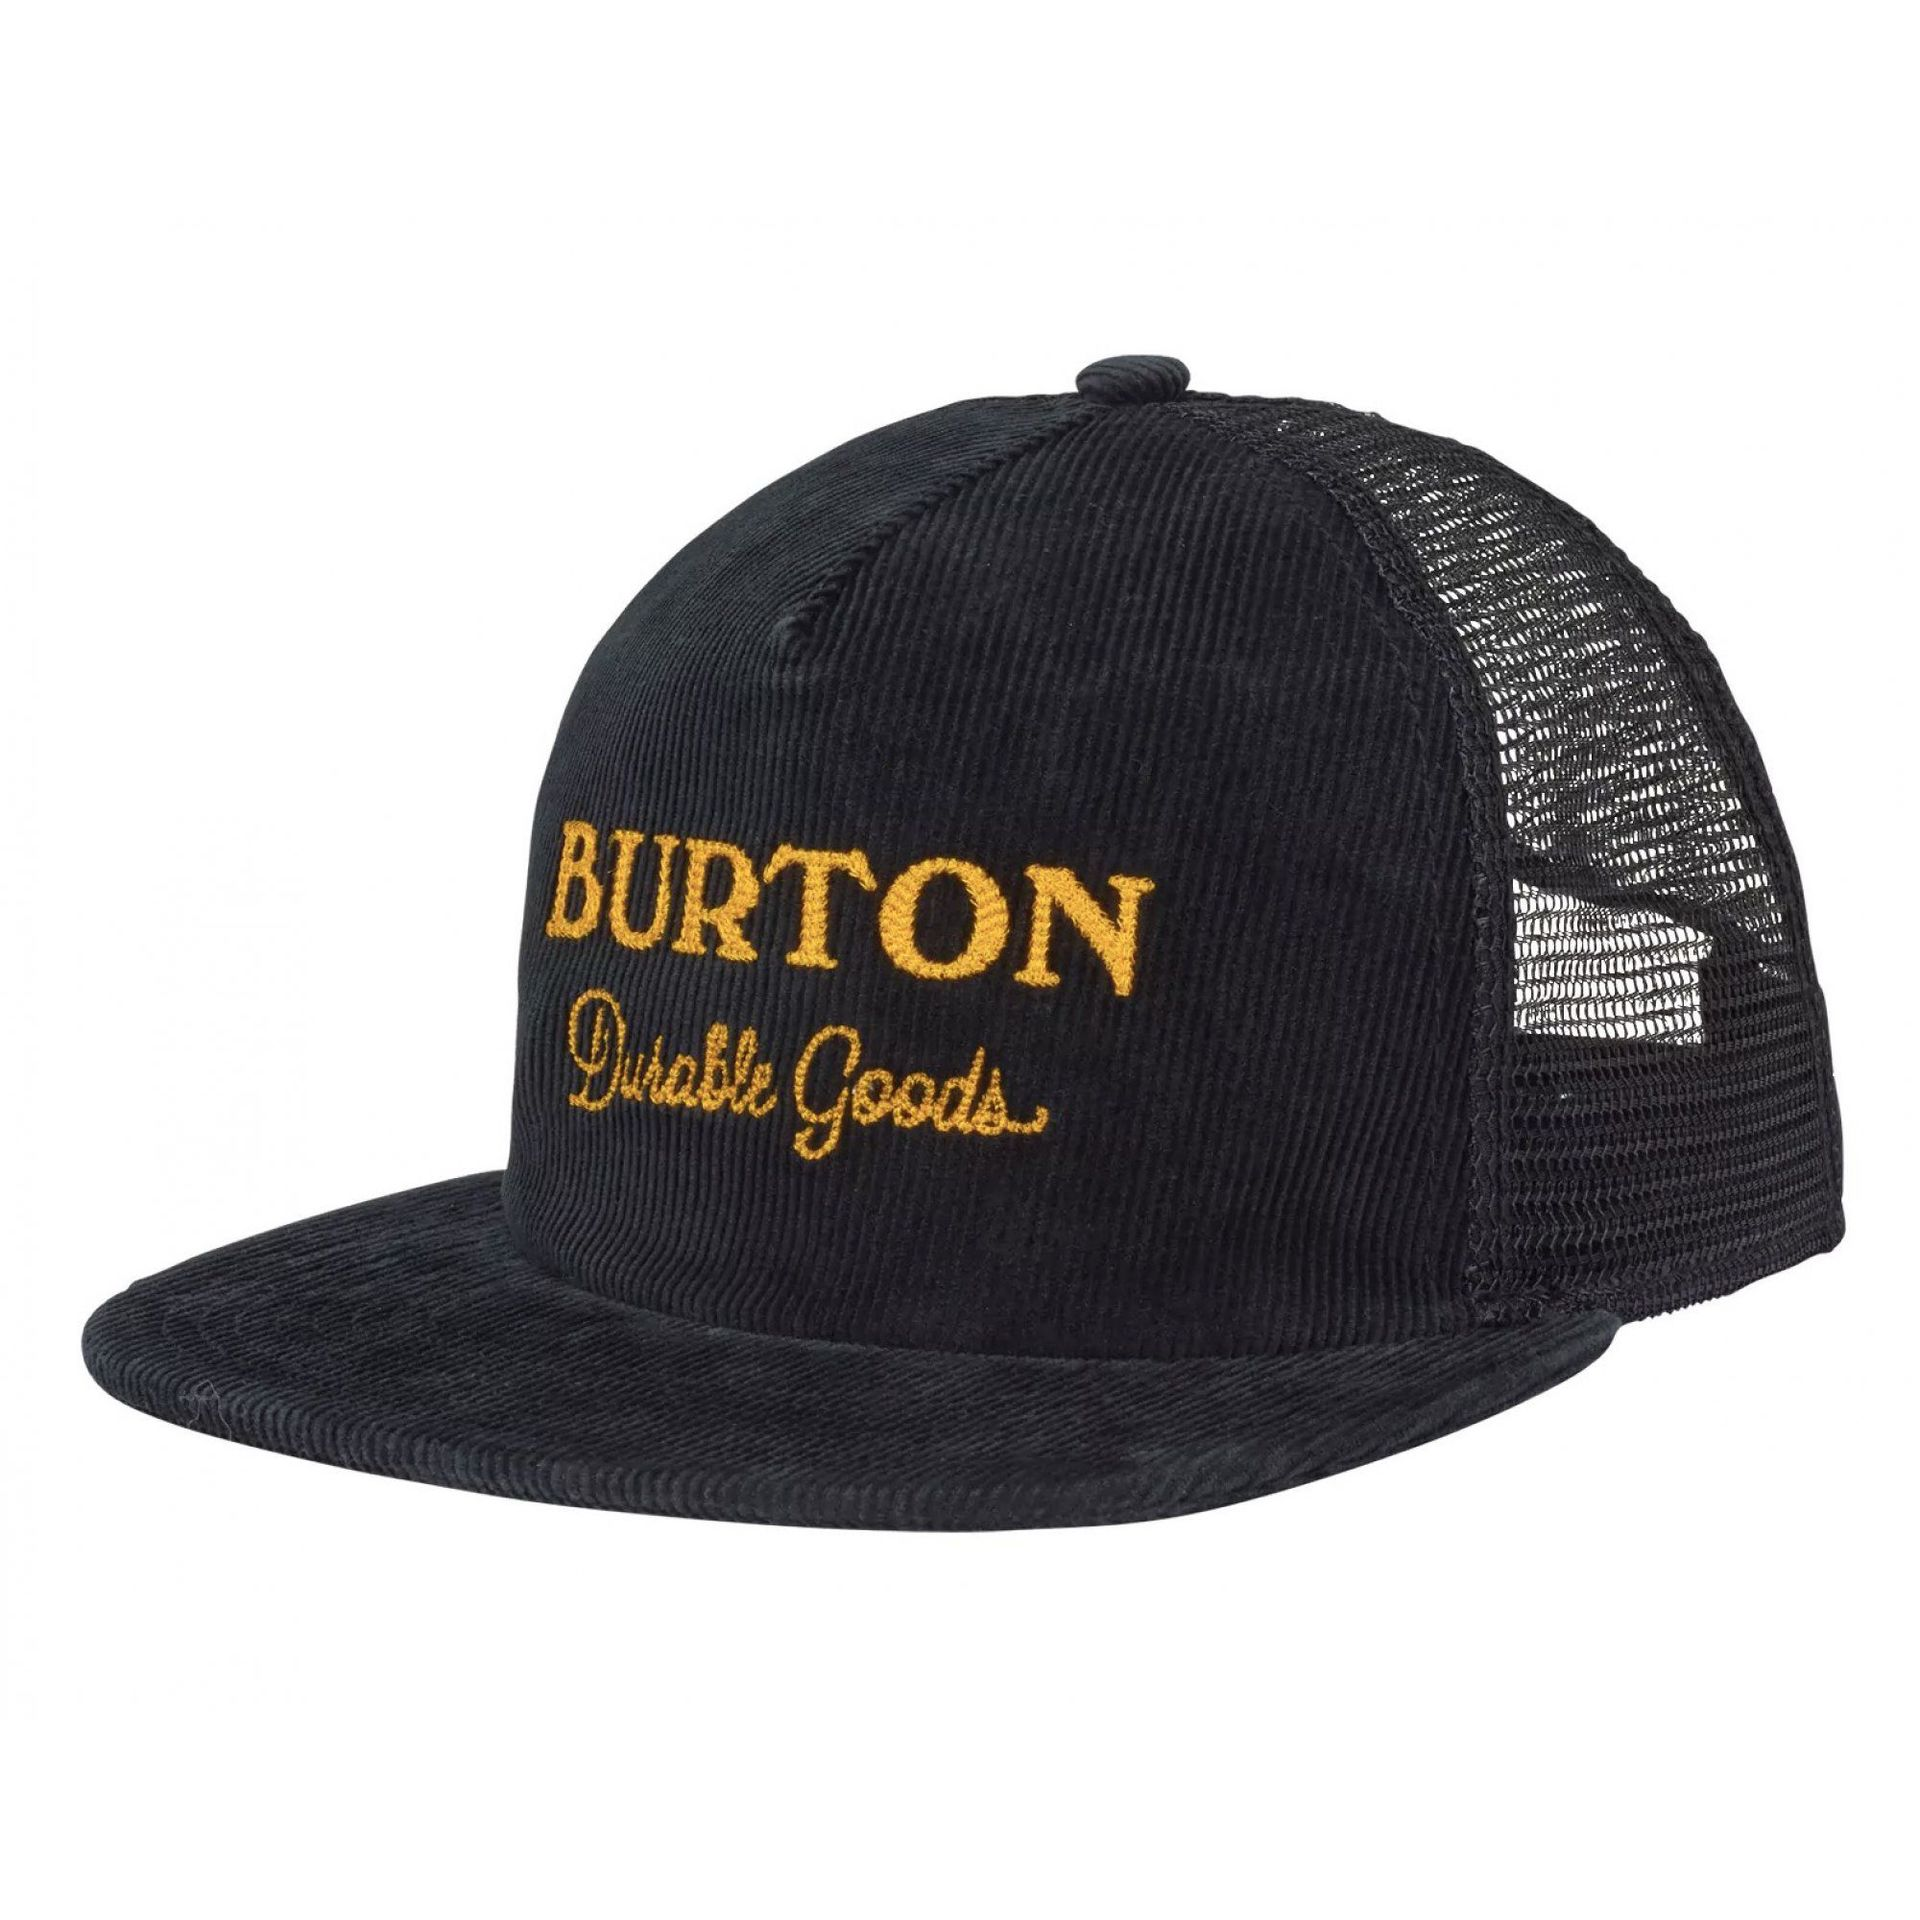 CZAPKA Z DASZKIEM BURTON DURABLE GOODS TRUE BLACK